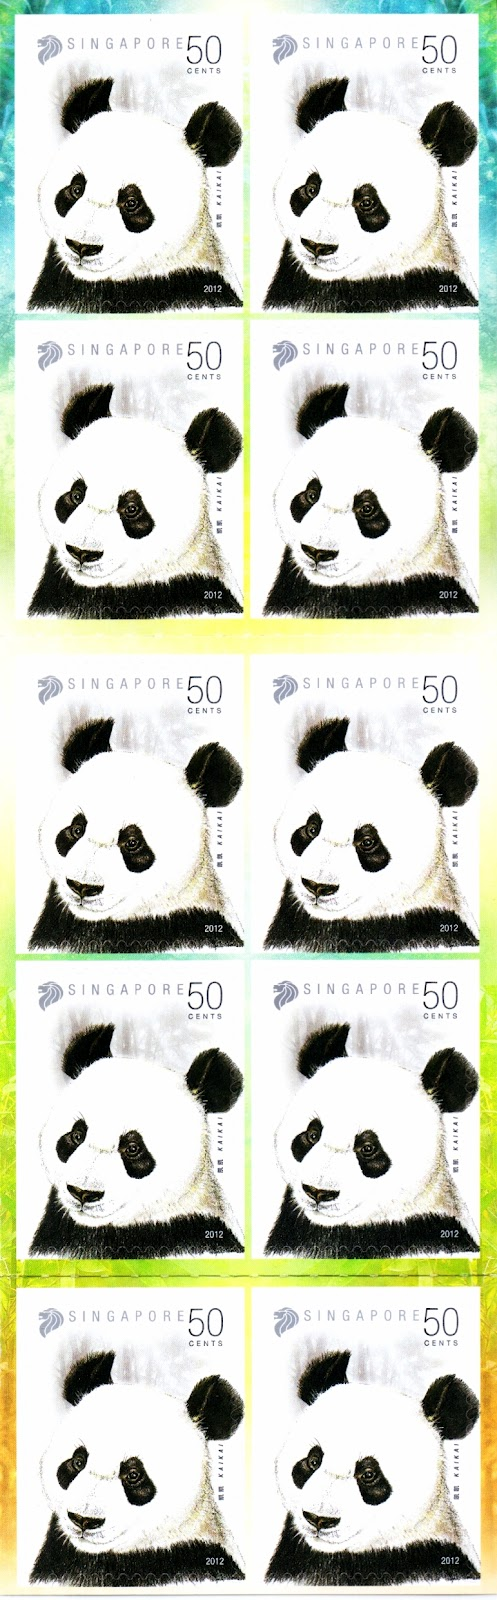 Pandas - 50¢ Self-adhesive Booklet (10 Stamps)